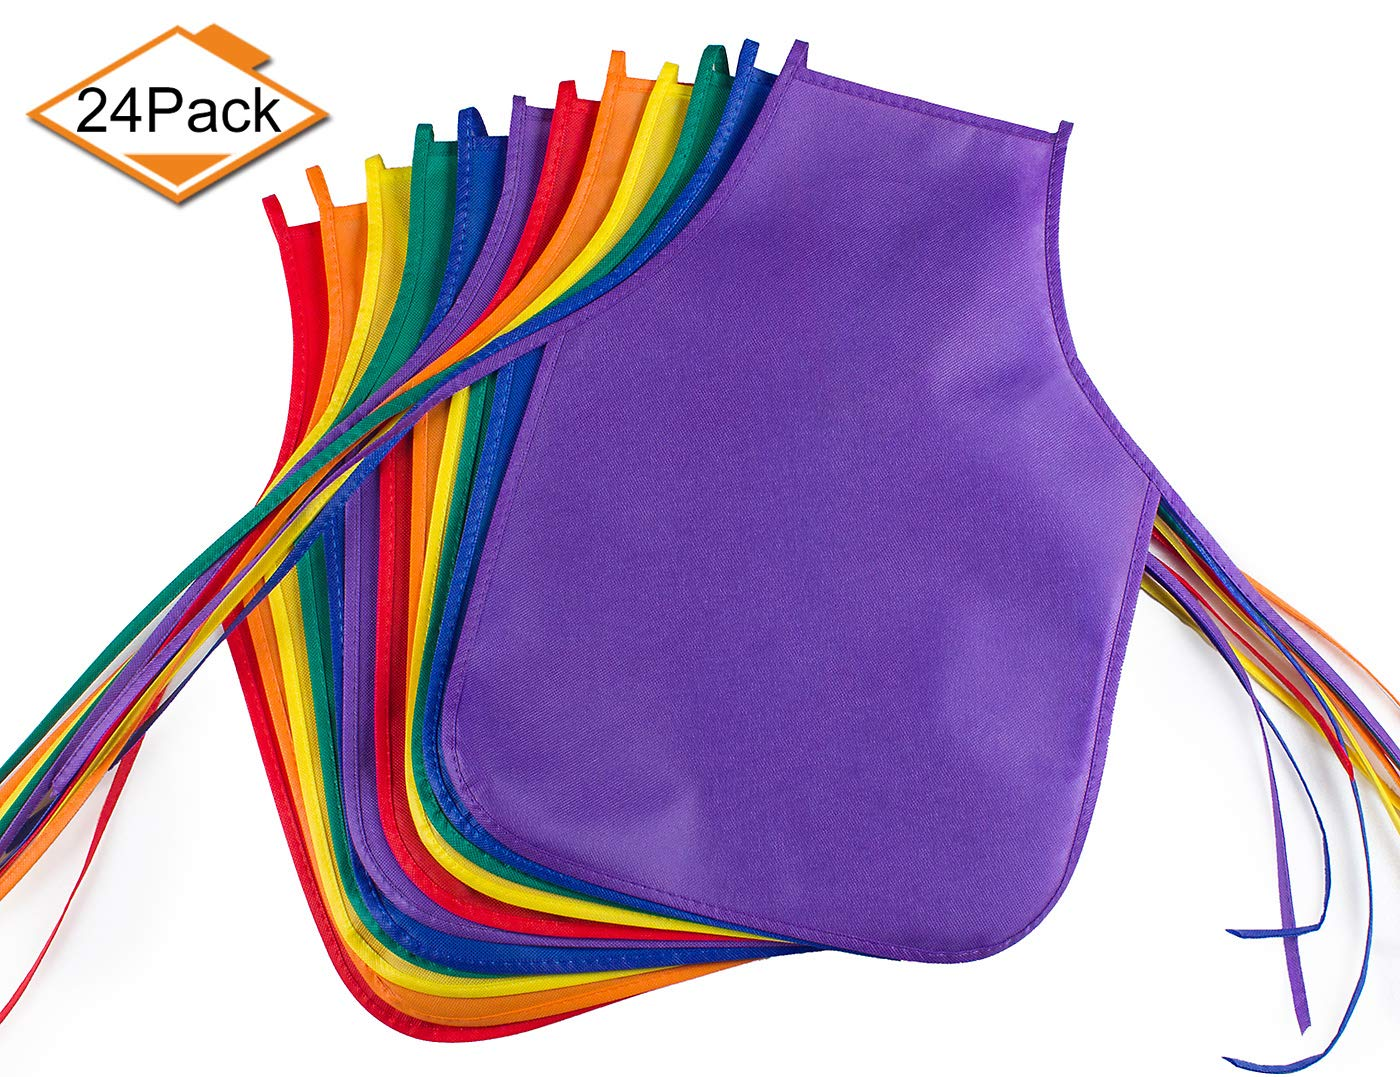 Children's Artists Fabric Aprons - Classroom,Kitchen, Community Event, Crafts & Art Painting Activity. Safe Clean 24 Pack Assorted Colors